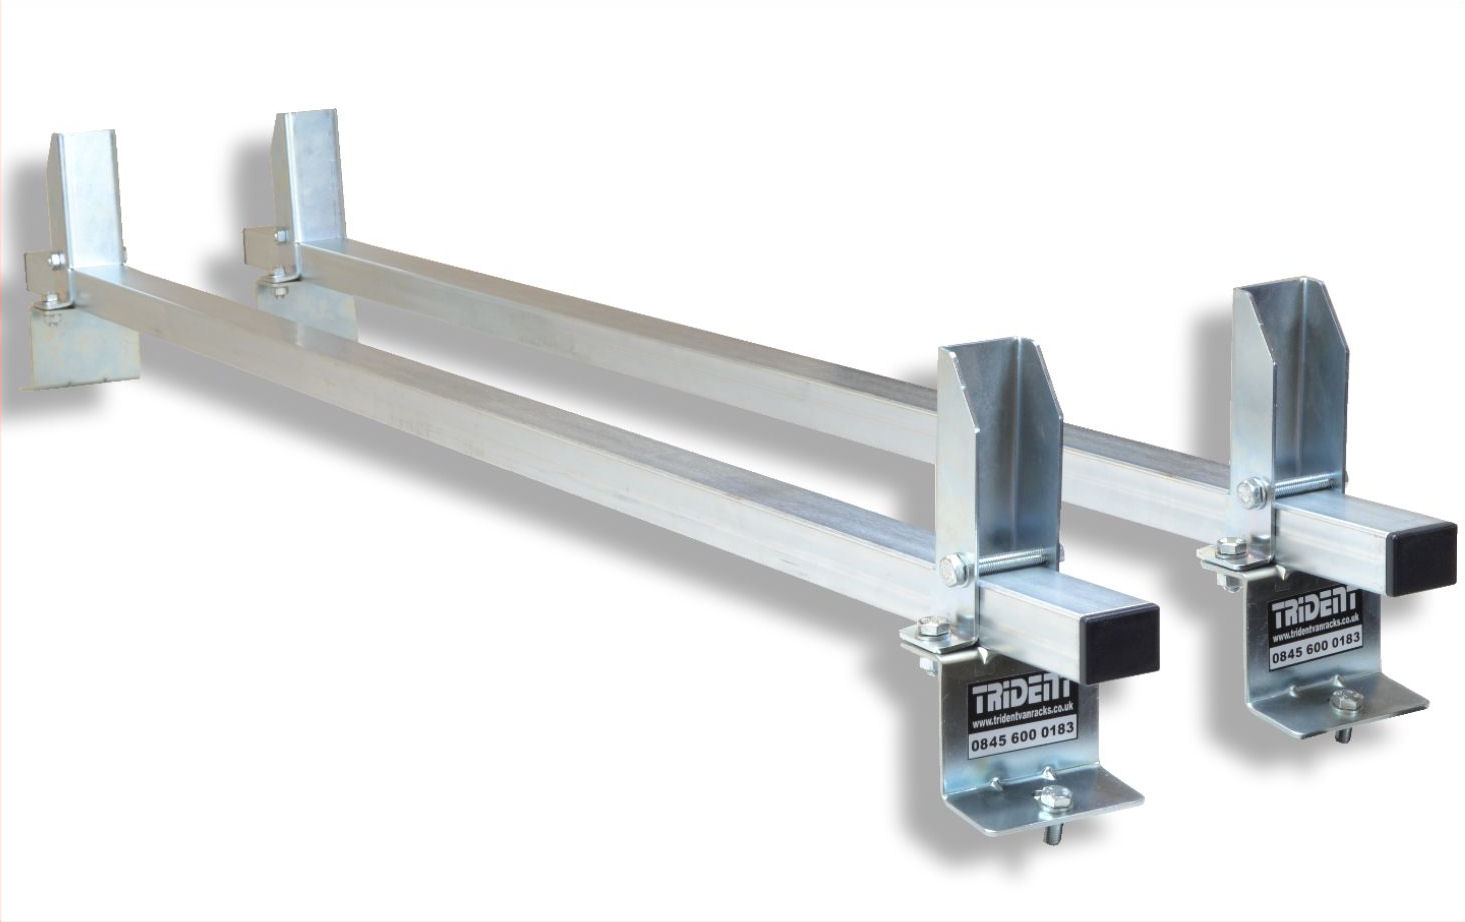 Trident roof bars